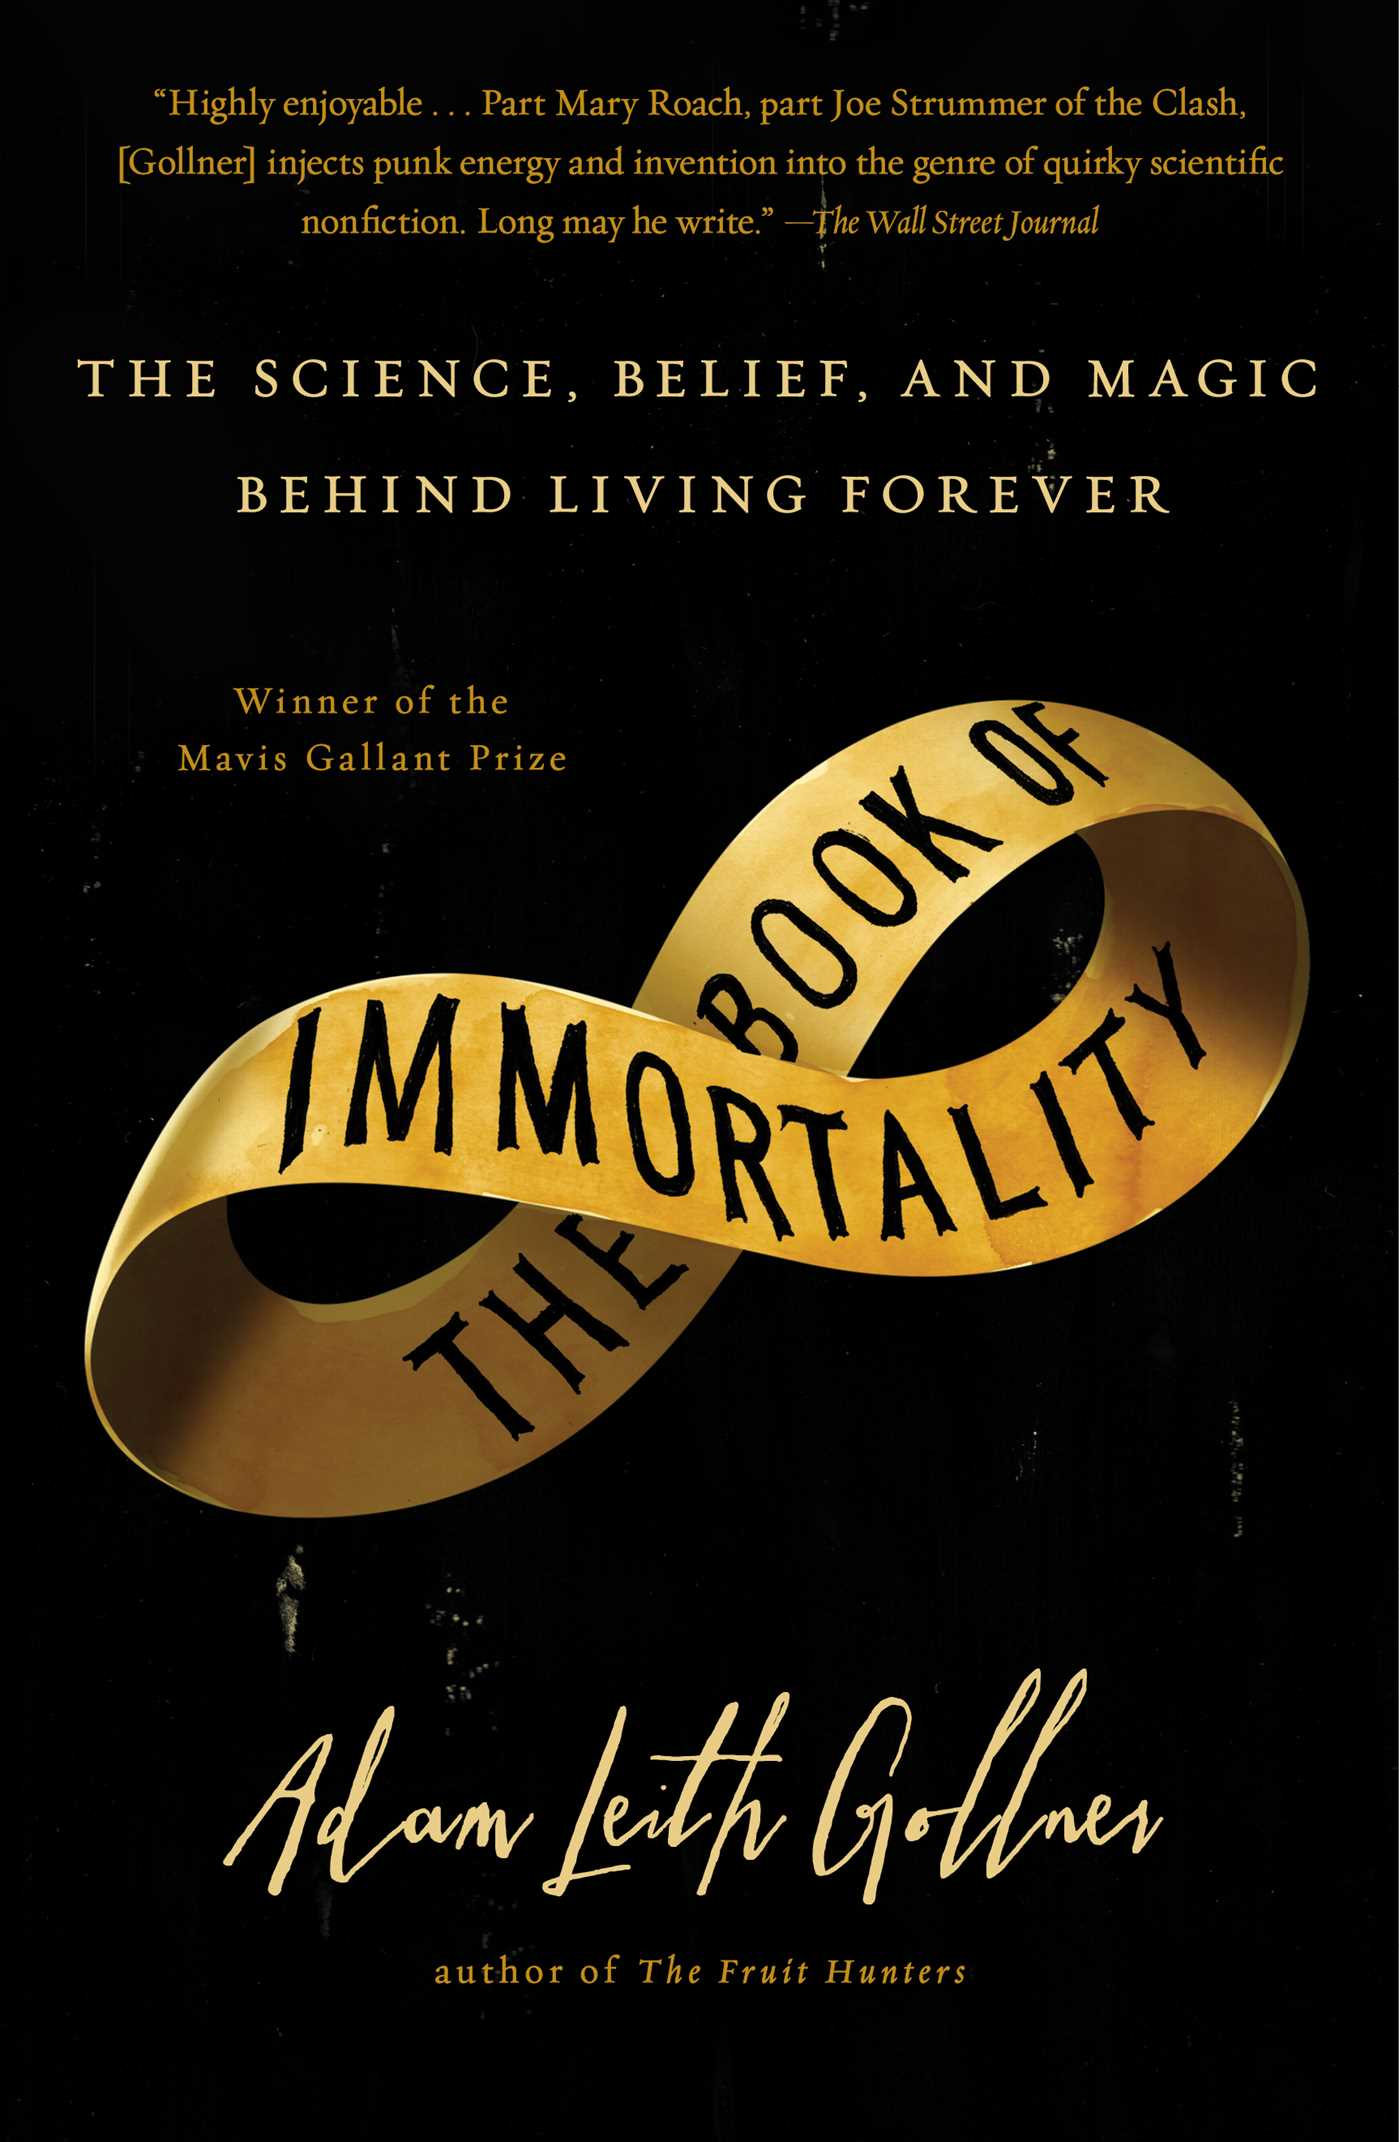 Book-of-immortality-9781439109434_hr